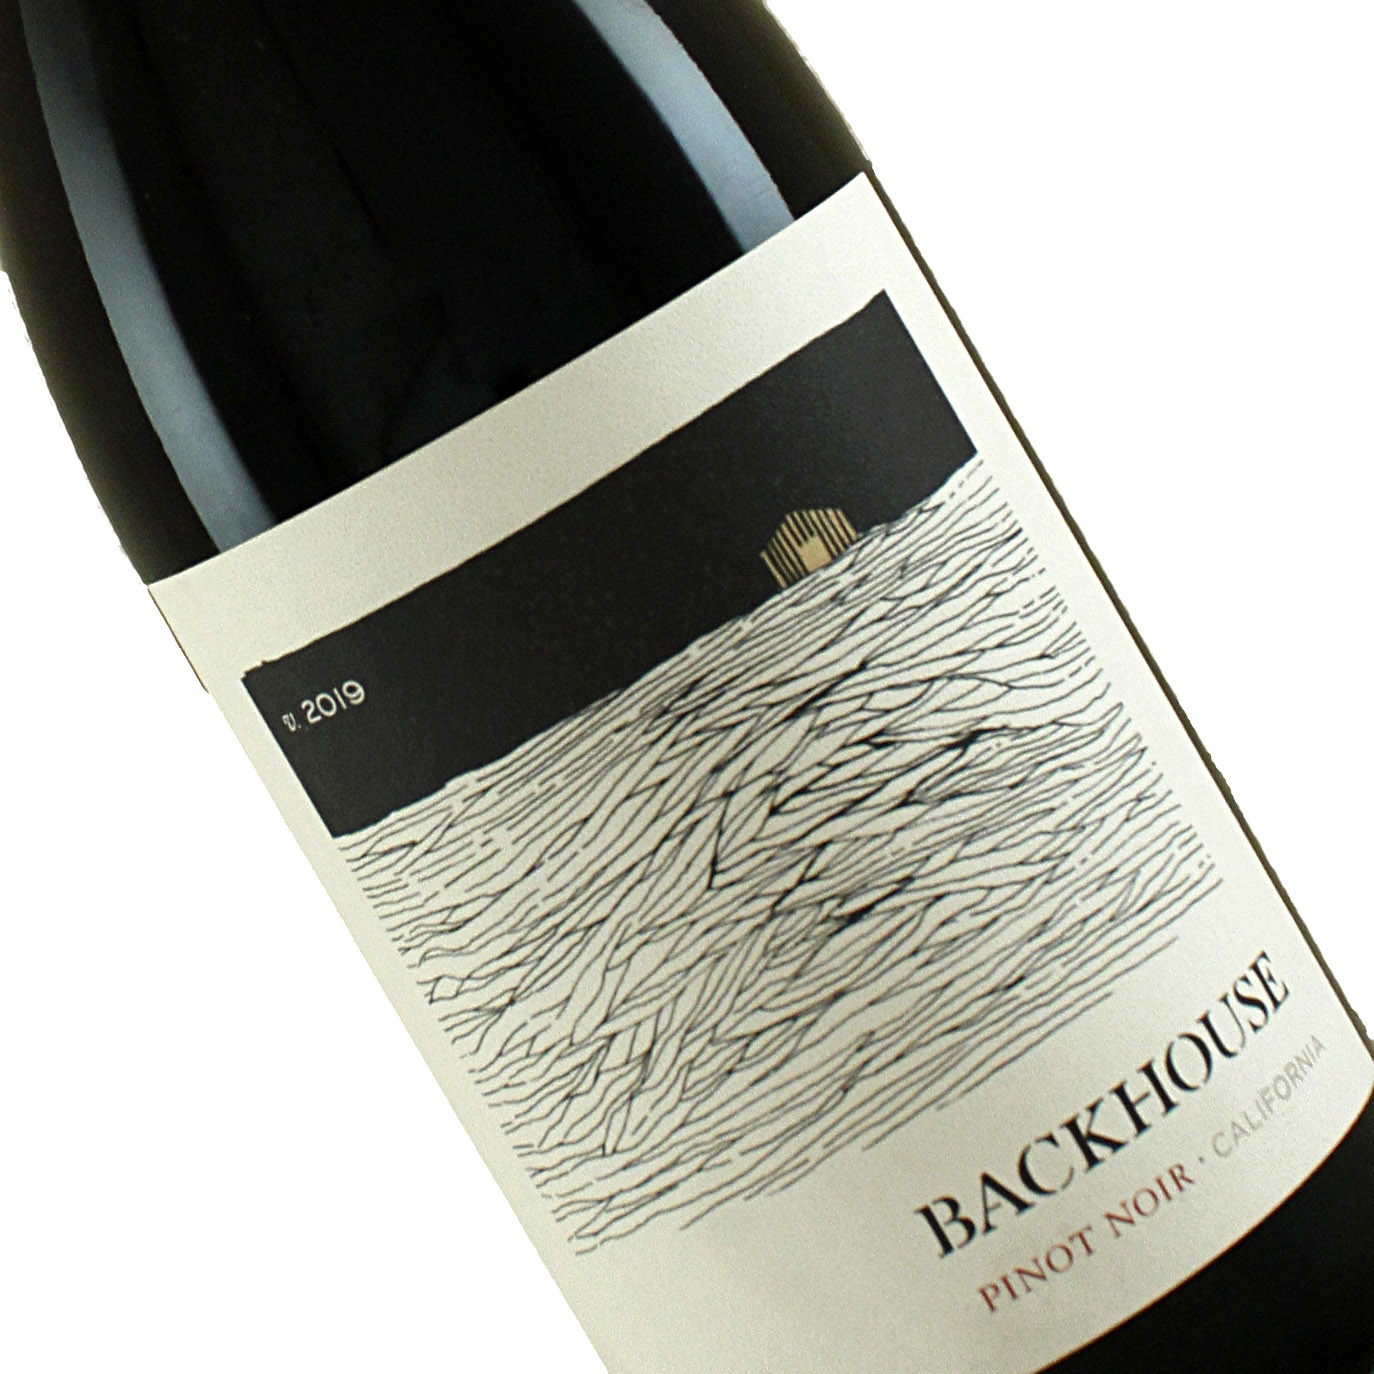 Backhouse 2019 Pinot Noir, California